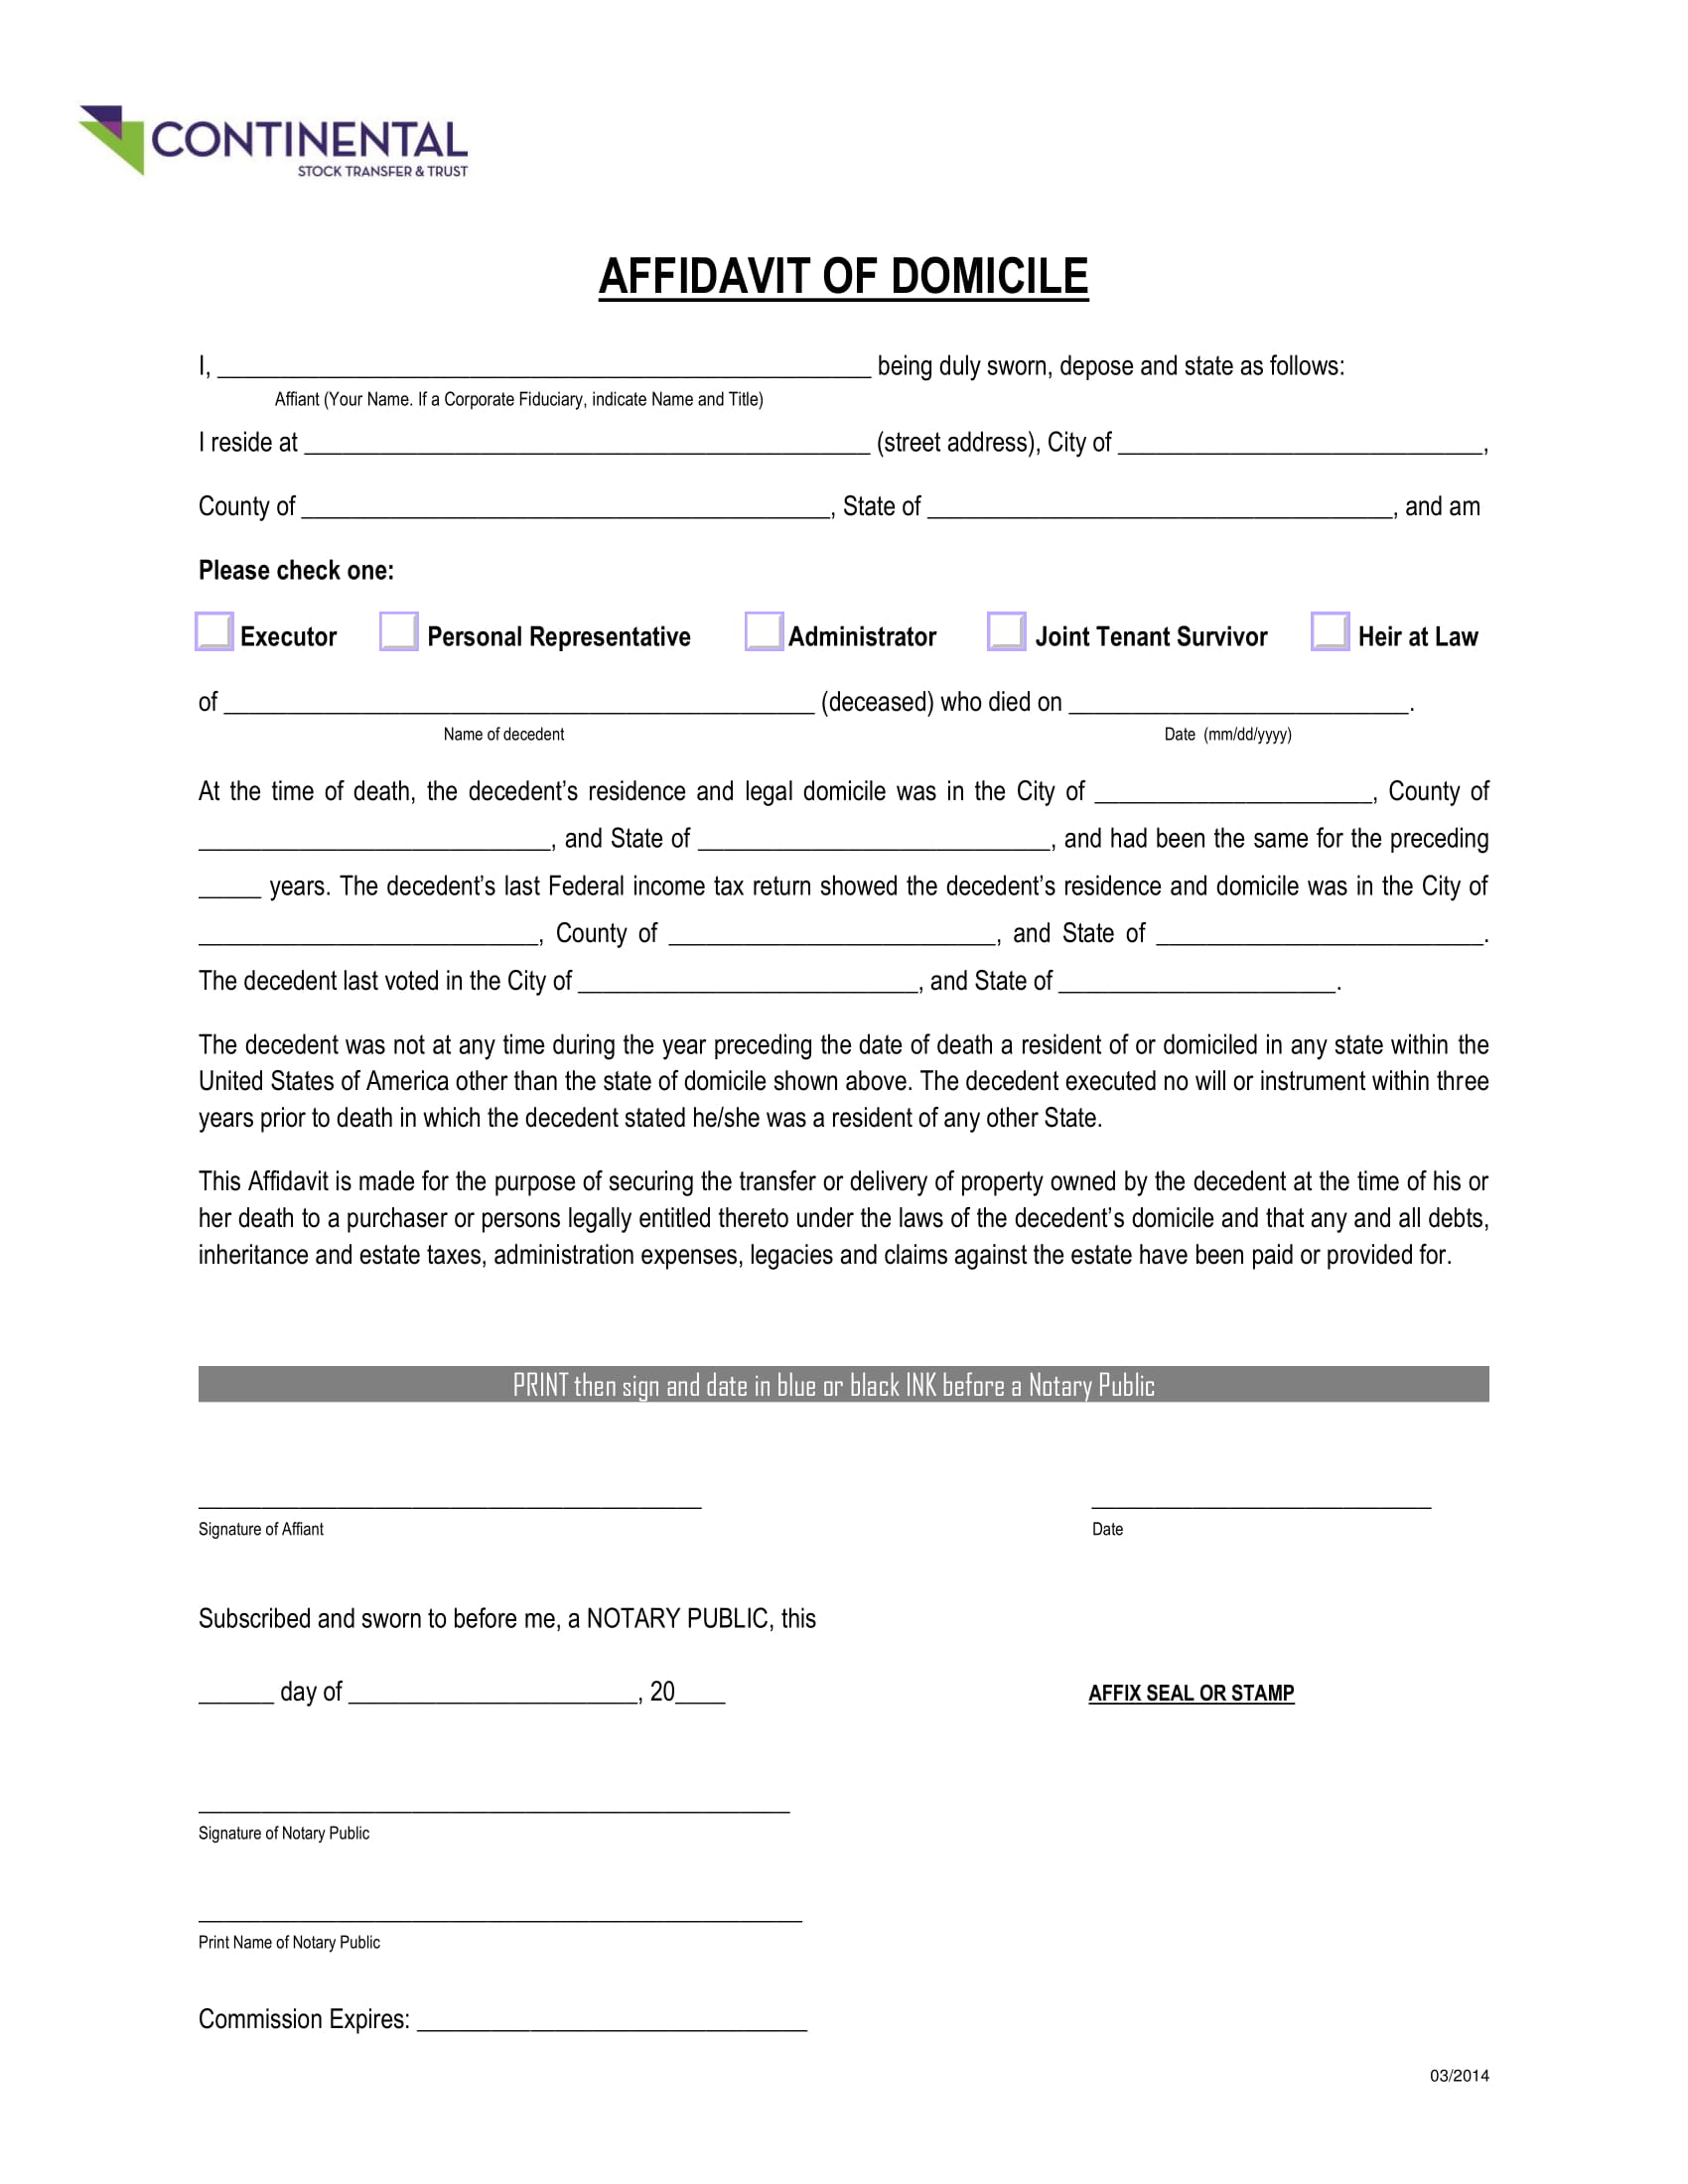 continental affidavit of domicile example